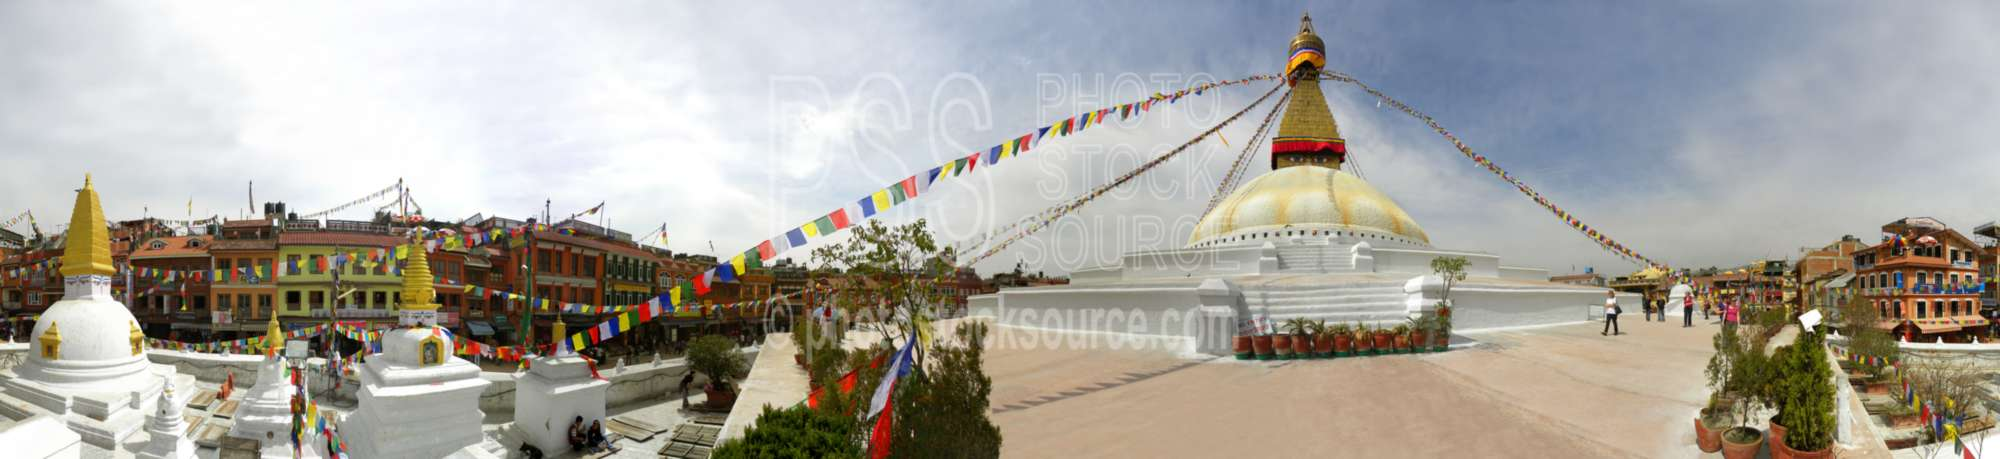 Boudhanath Stupa Prayer Flags